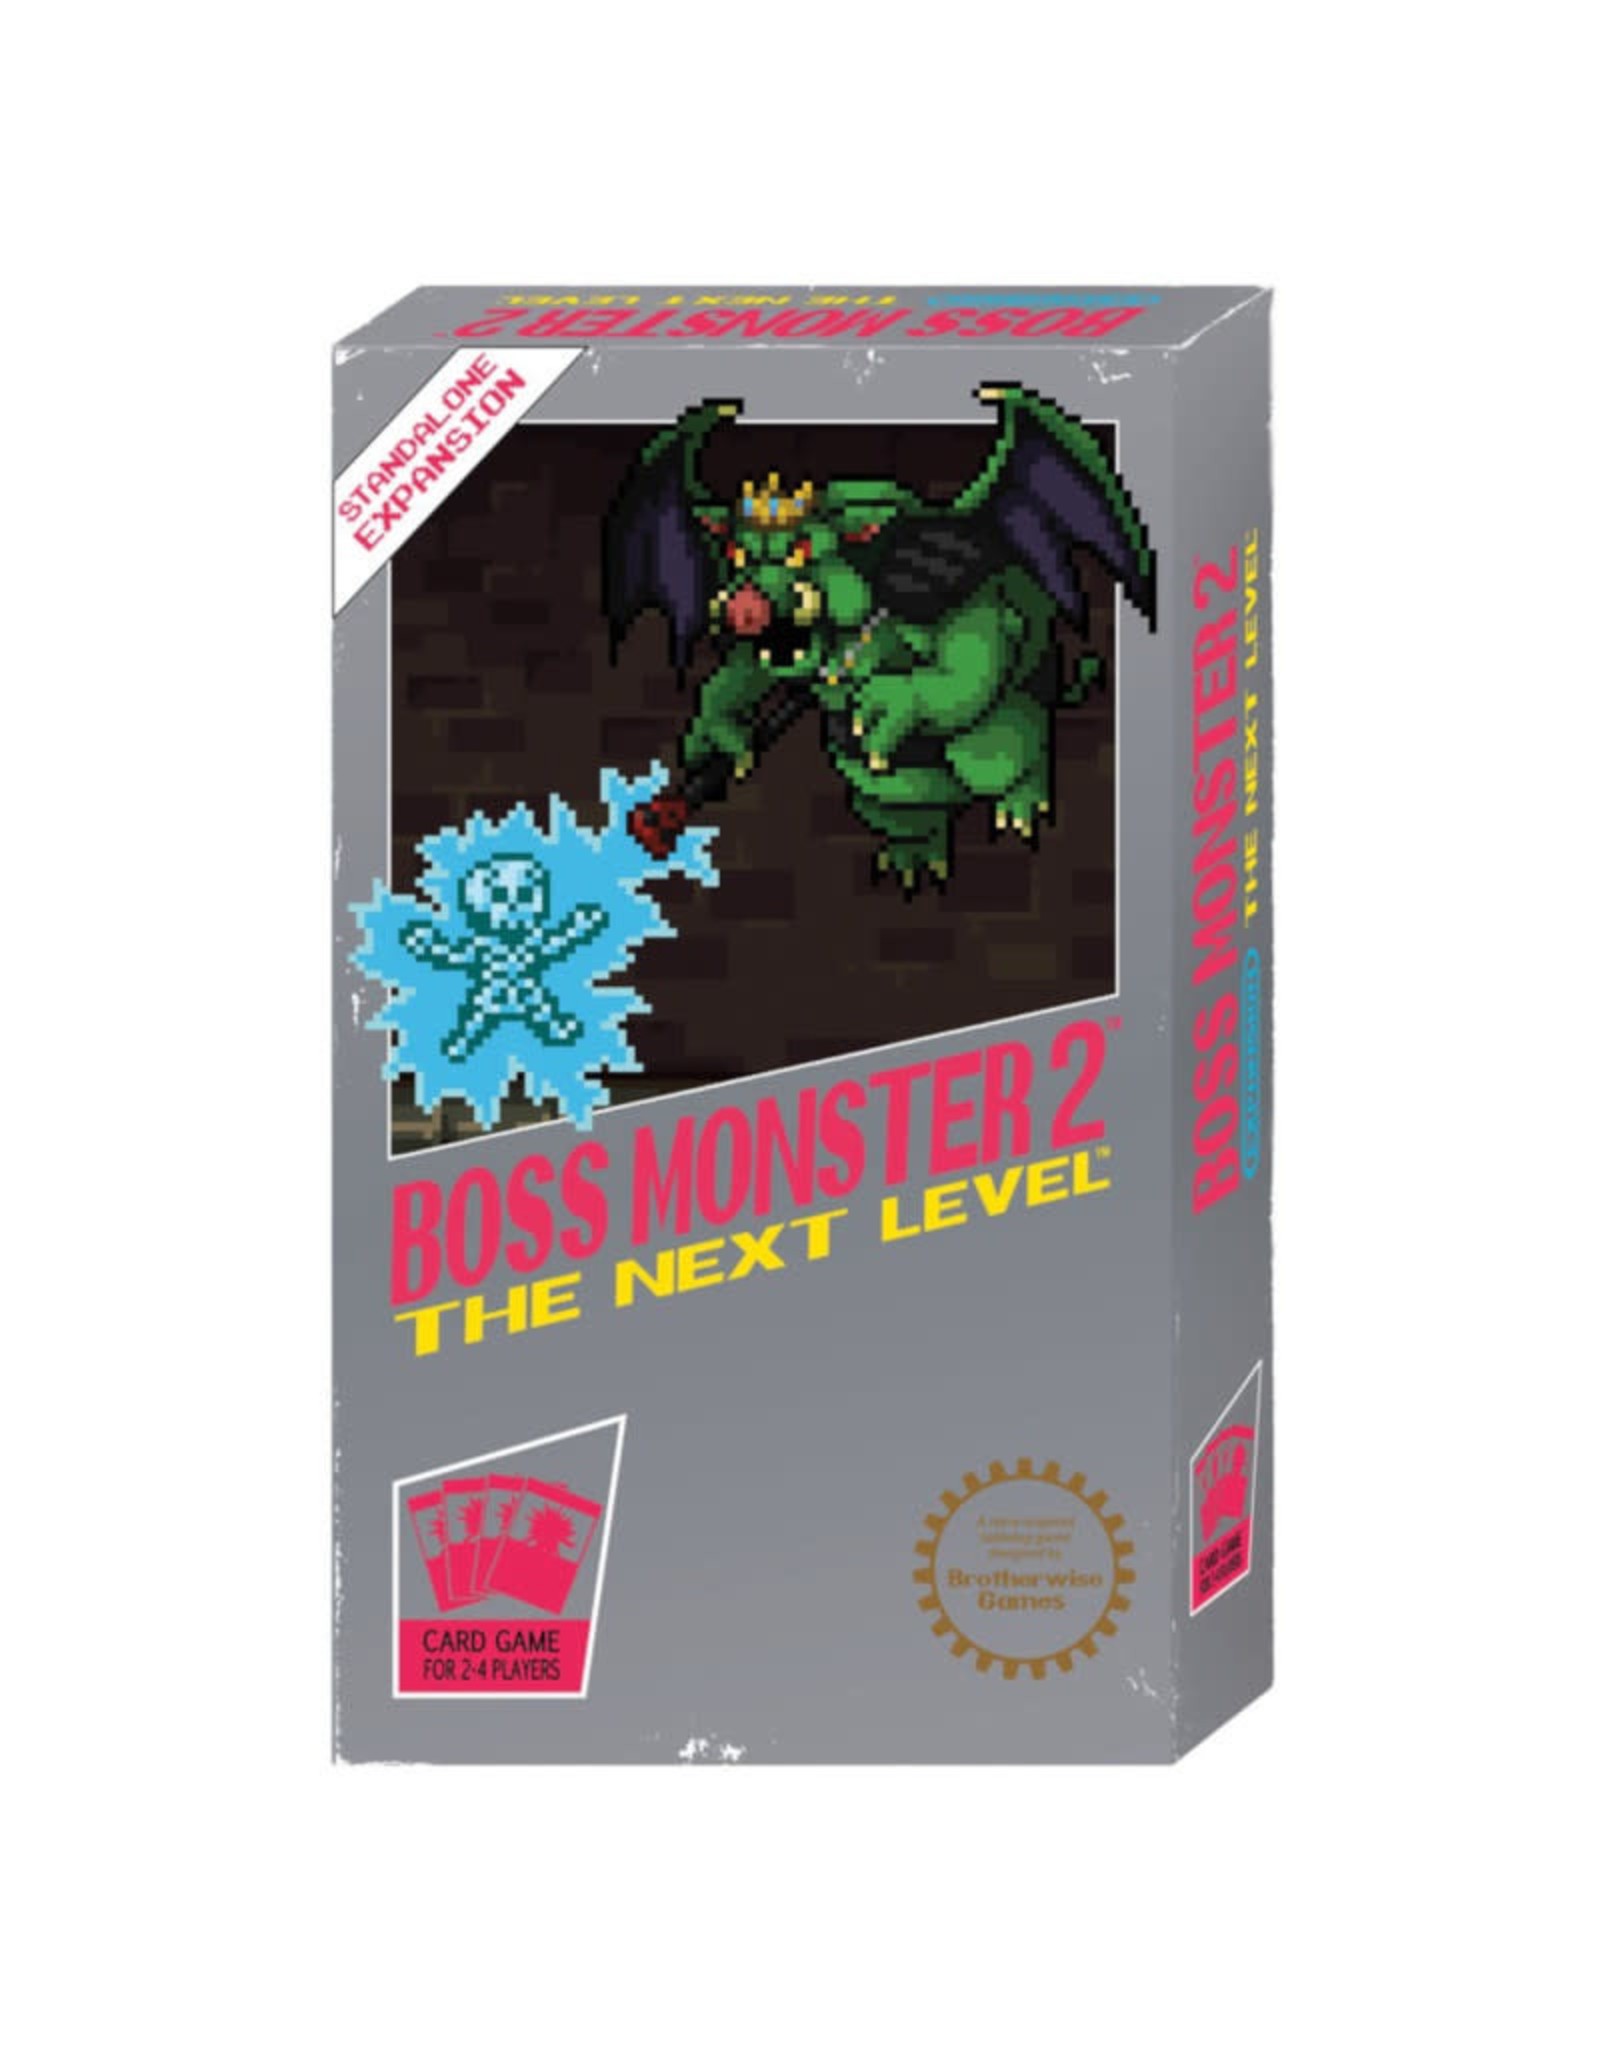 Brotherwise Games Boss Monster 2 The Next Level